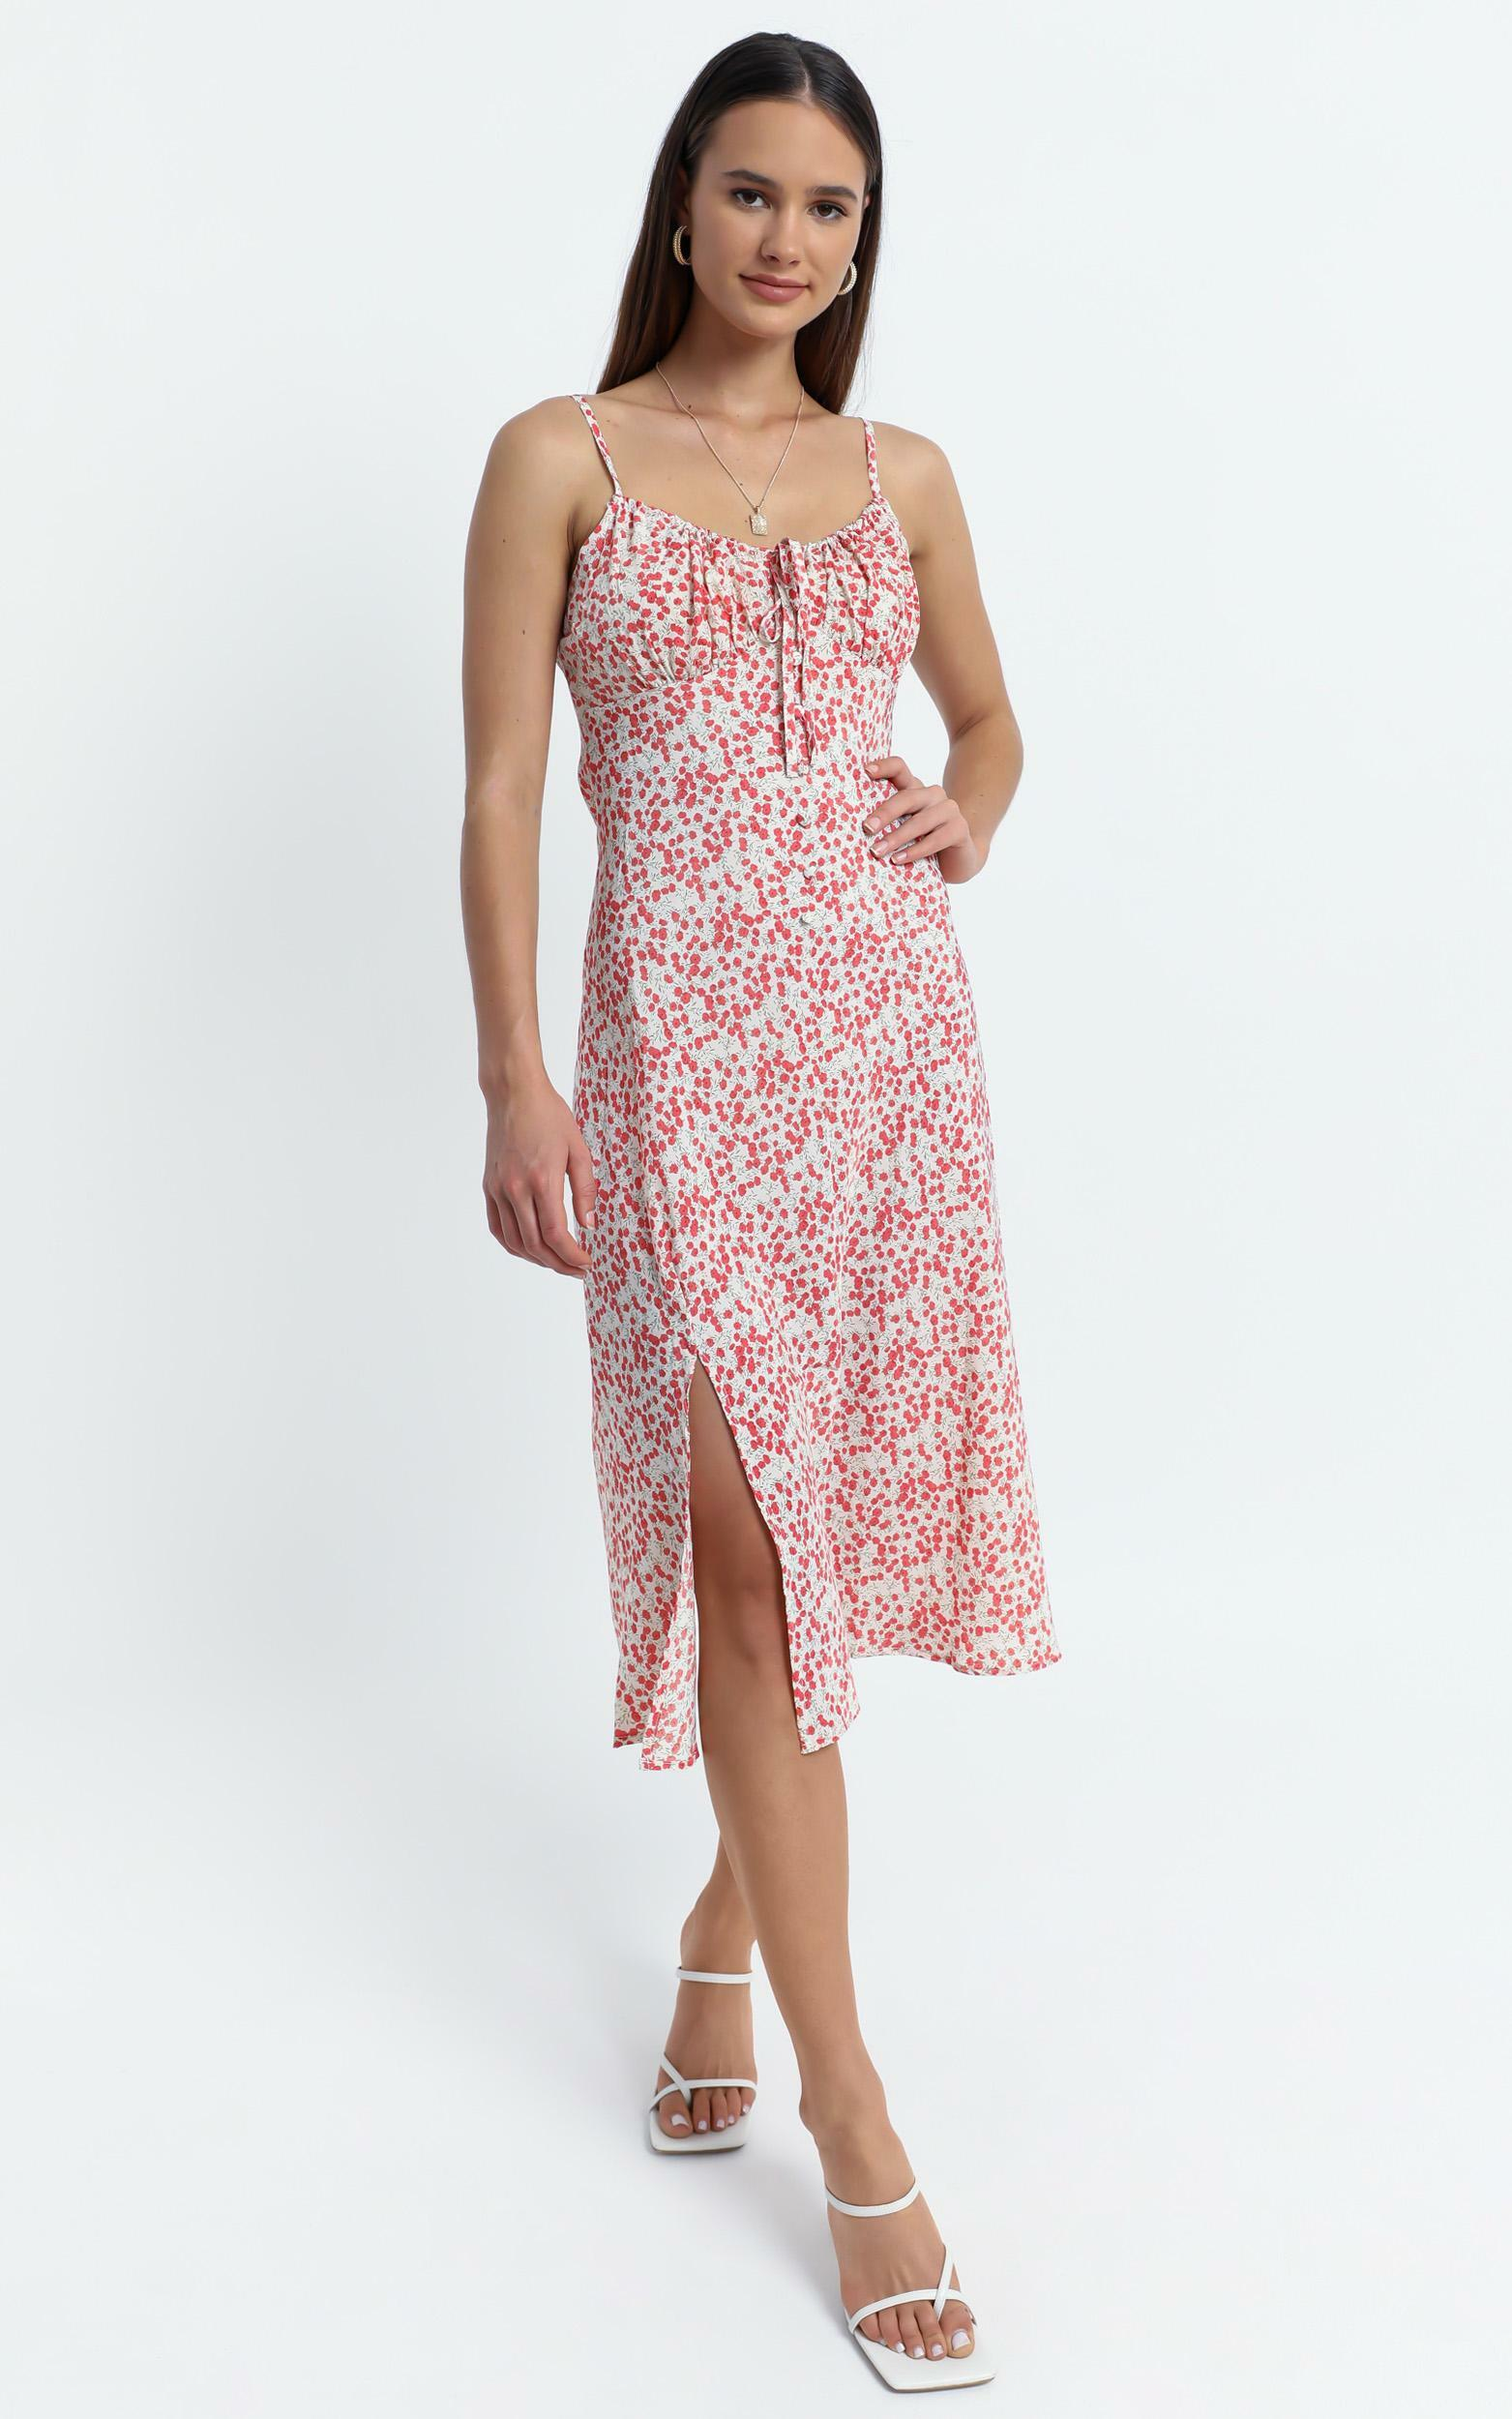 California Dress in Red Floral - 6 (XS), Red, hi-res image number null